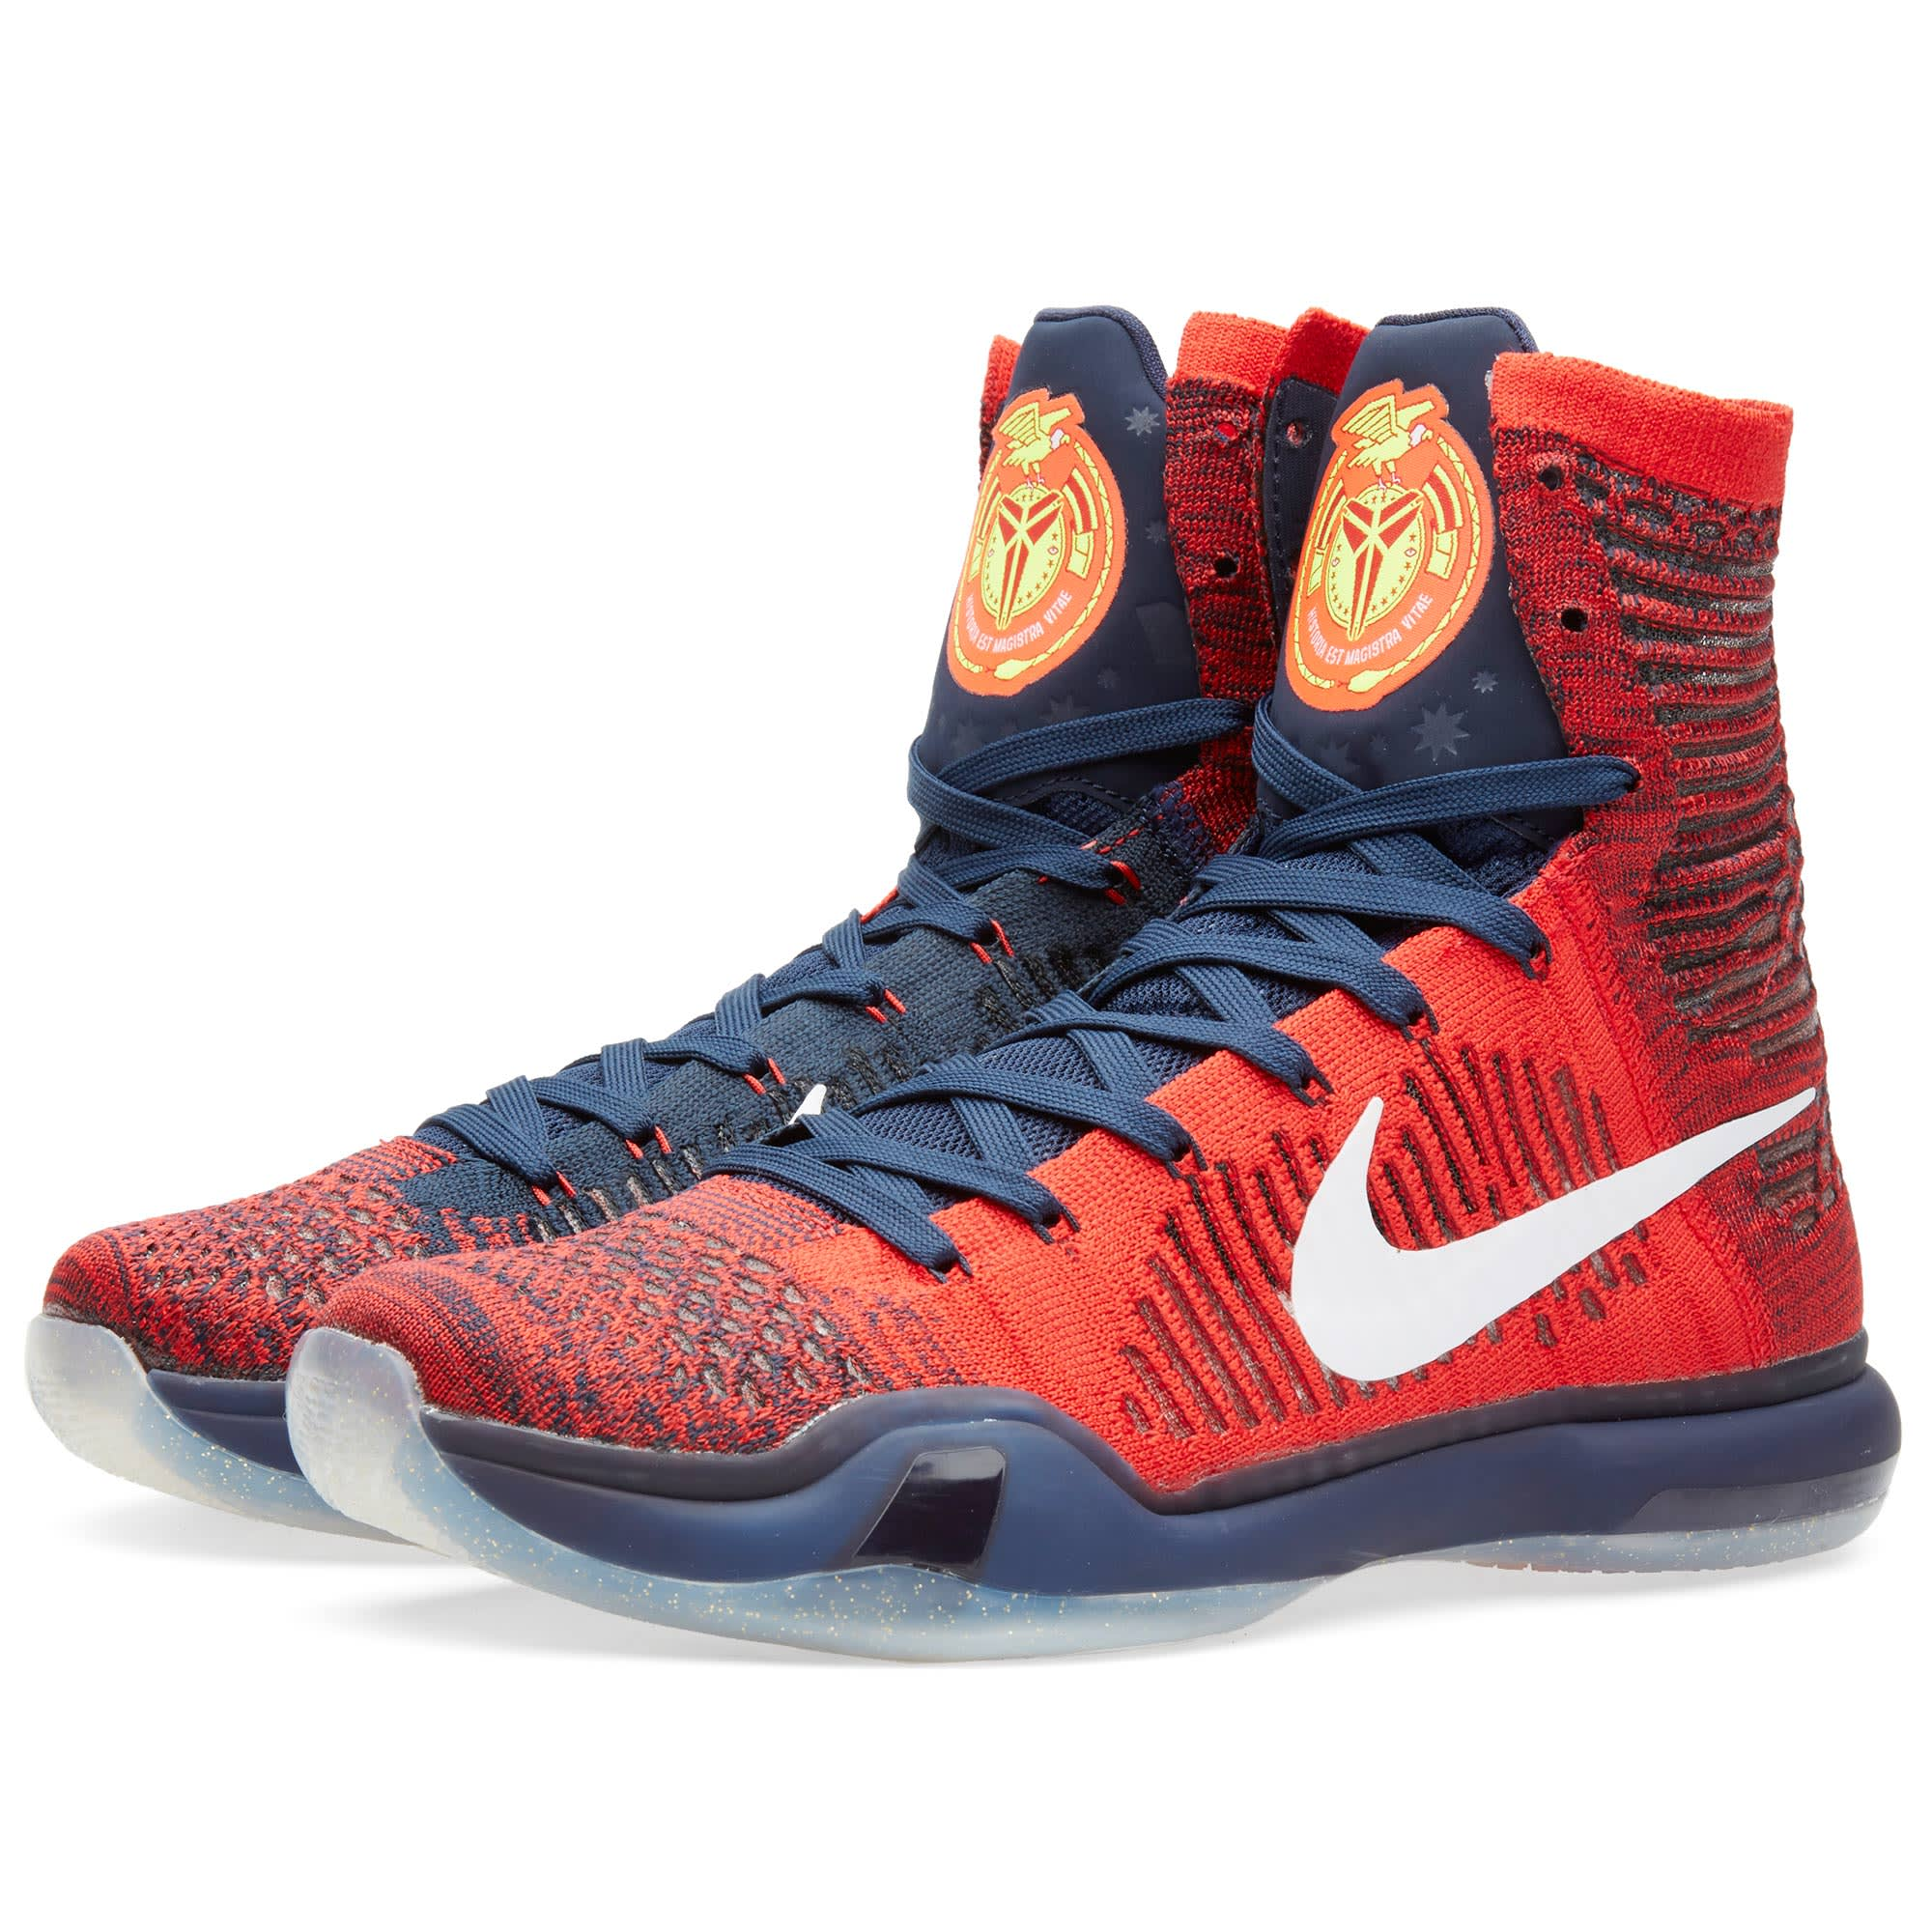 buy popular 634a8 00816 Nike Kobe X Elite  American  University Red   White   END.